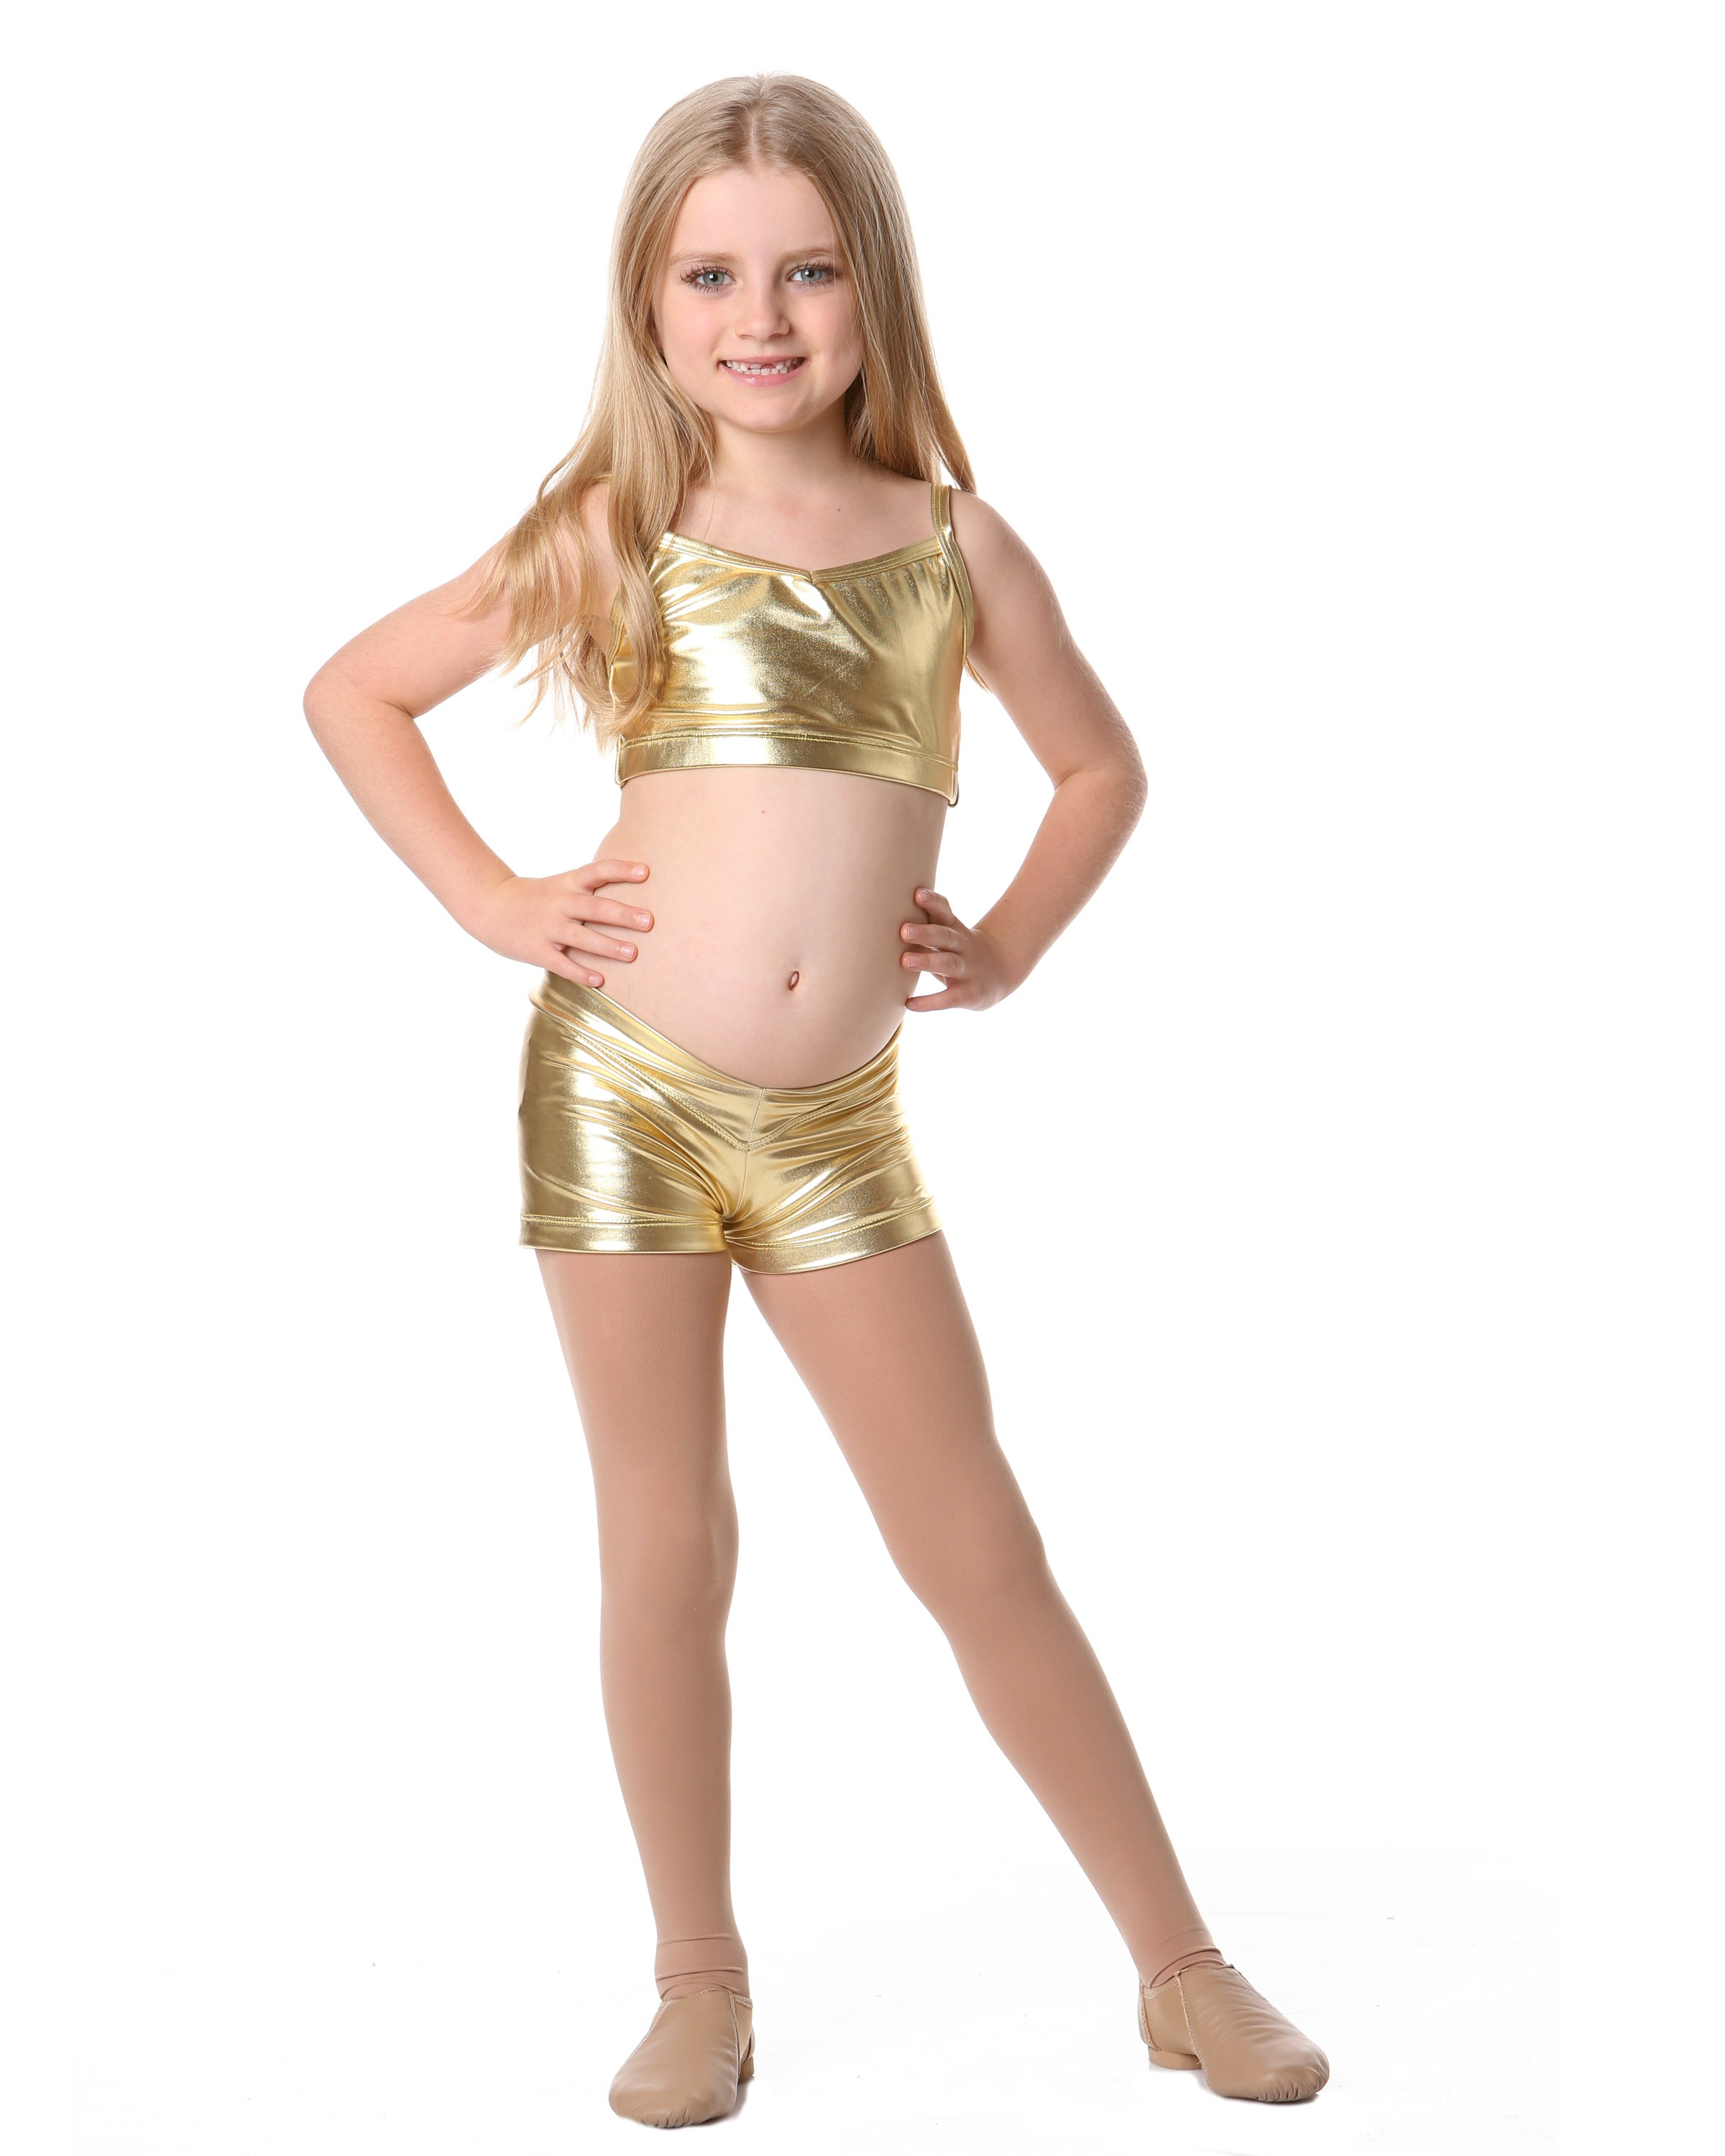 Studio 7 Camisole Crop Top - Childs